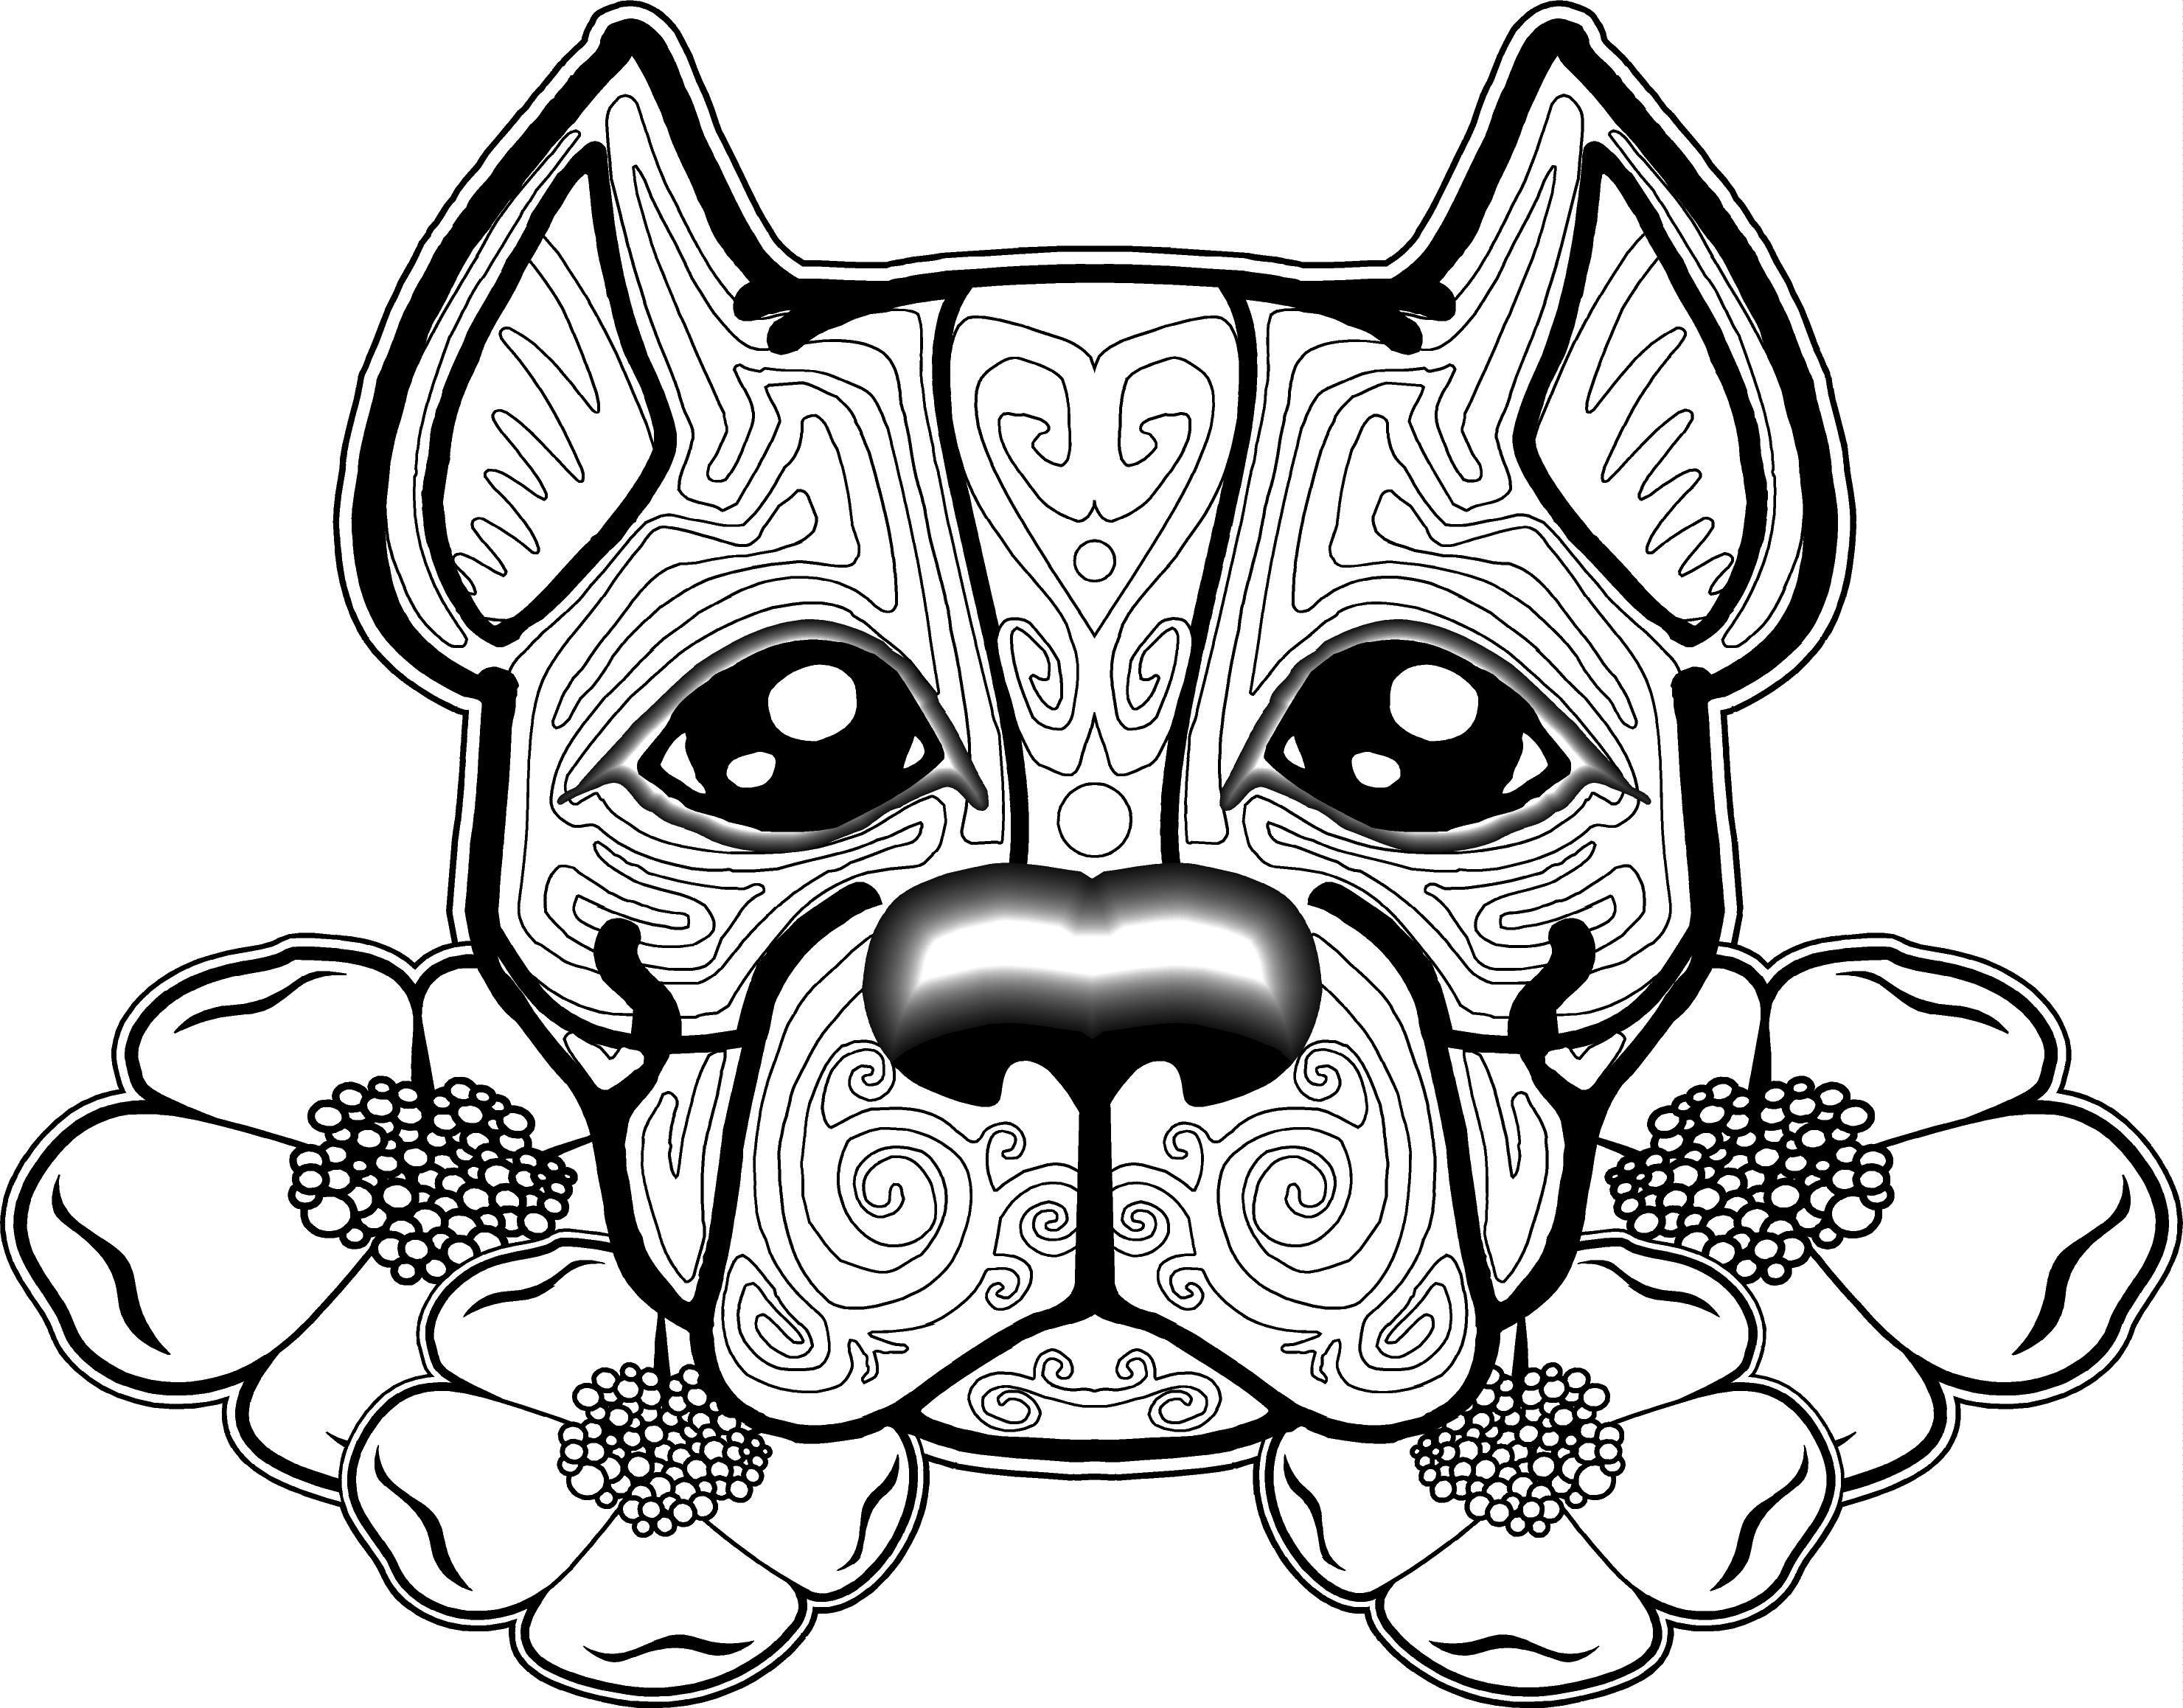 Printable Dog Coloring Pages Ideas For Kids | Dog coloring ...